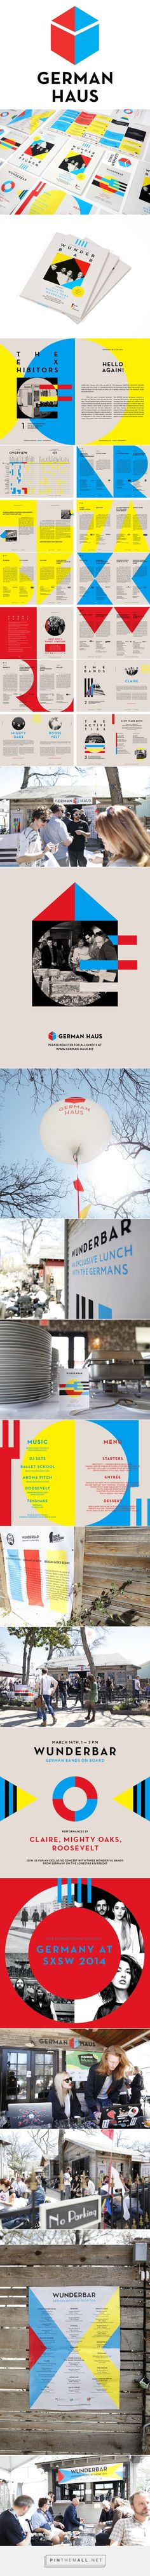 SXSW 2014. German Haus. on Behance - created via http://pinthemall.net